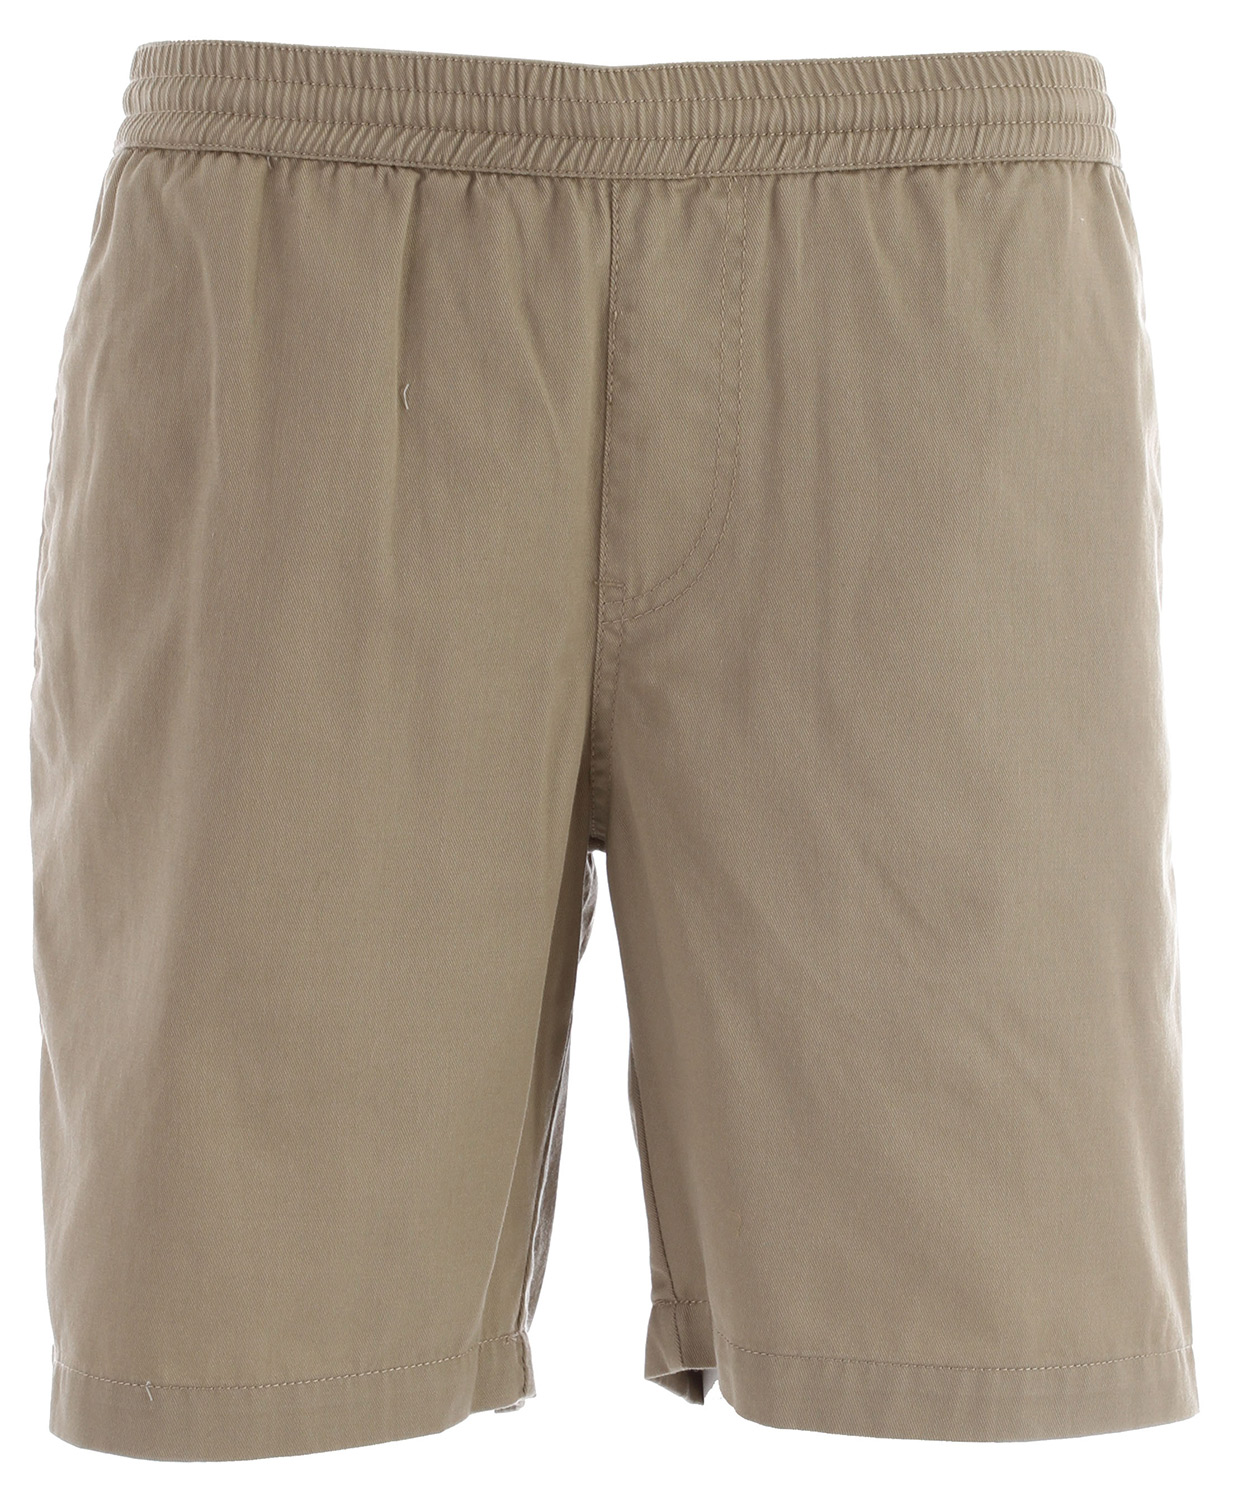 "Surf Key Features of the Volcom Frickin Elastic Shorts: 18"" outseam Elastic waist short with interior drawcord Welt back pockets Pre-laundered 60% cotton/40% polyester - $39.50"